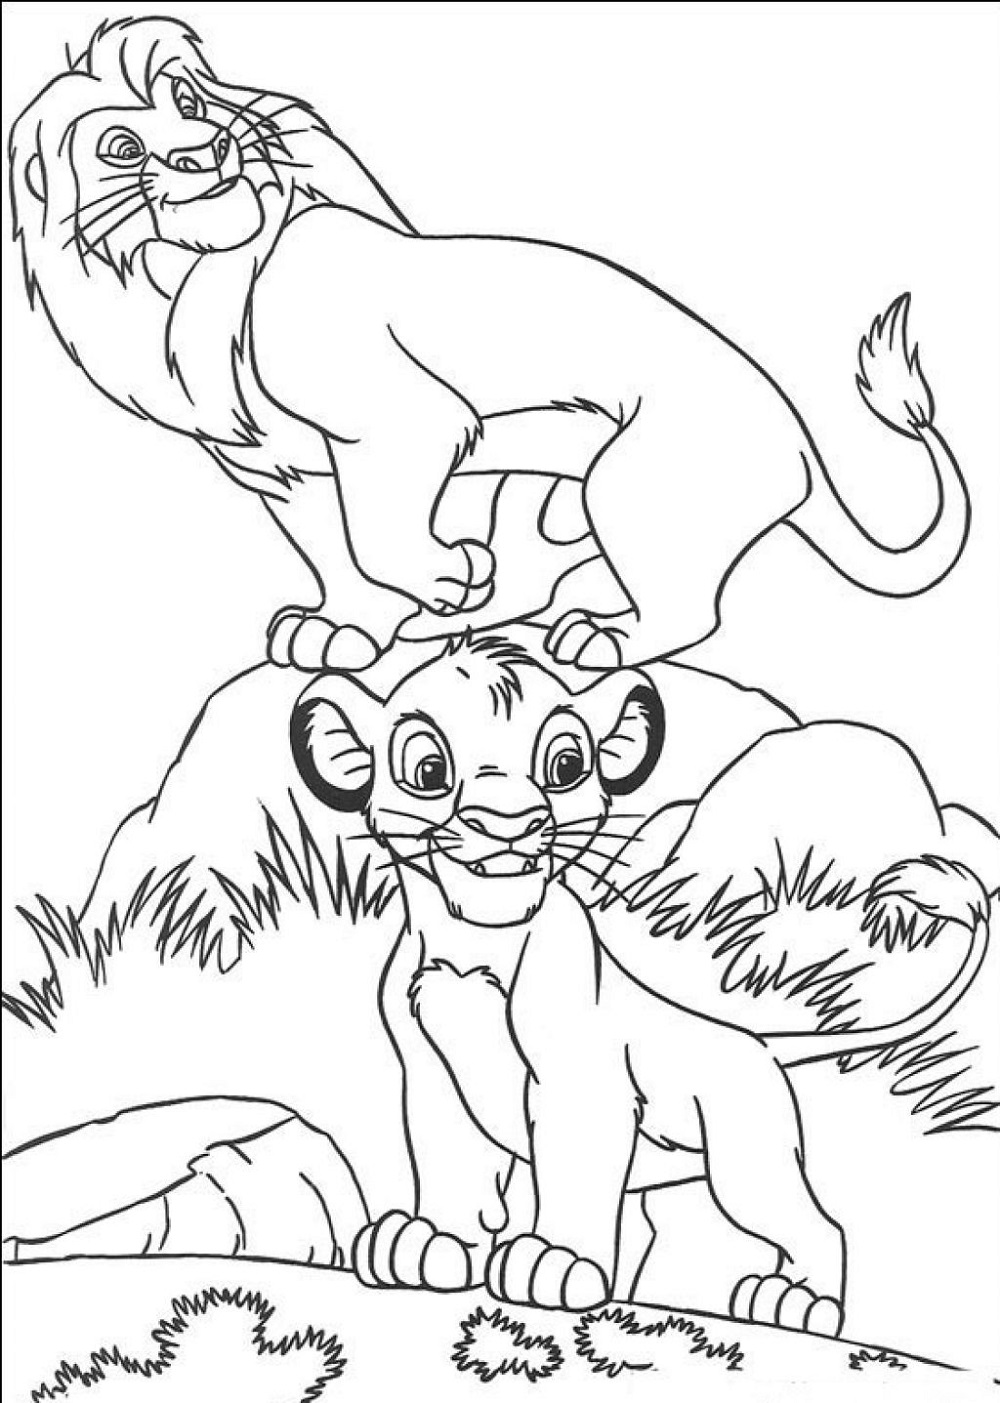 colouring images of lion coloring pictures of animals lion free images lion of colouring